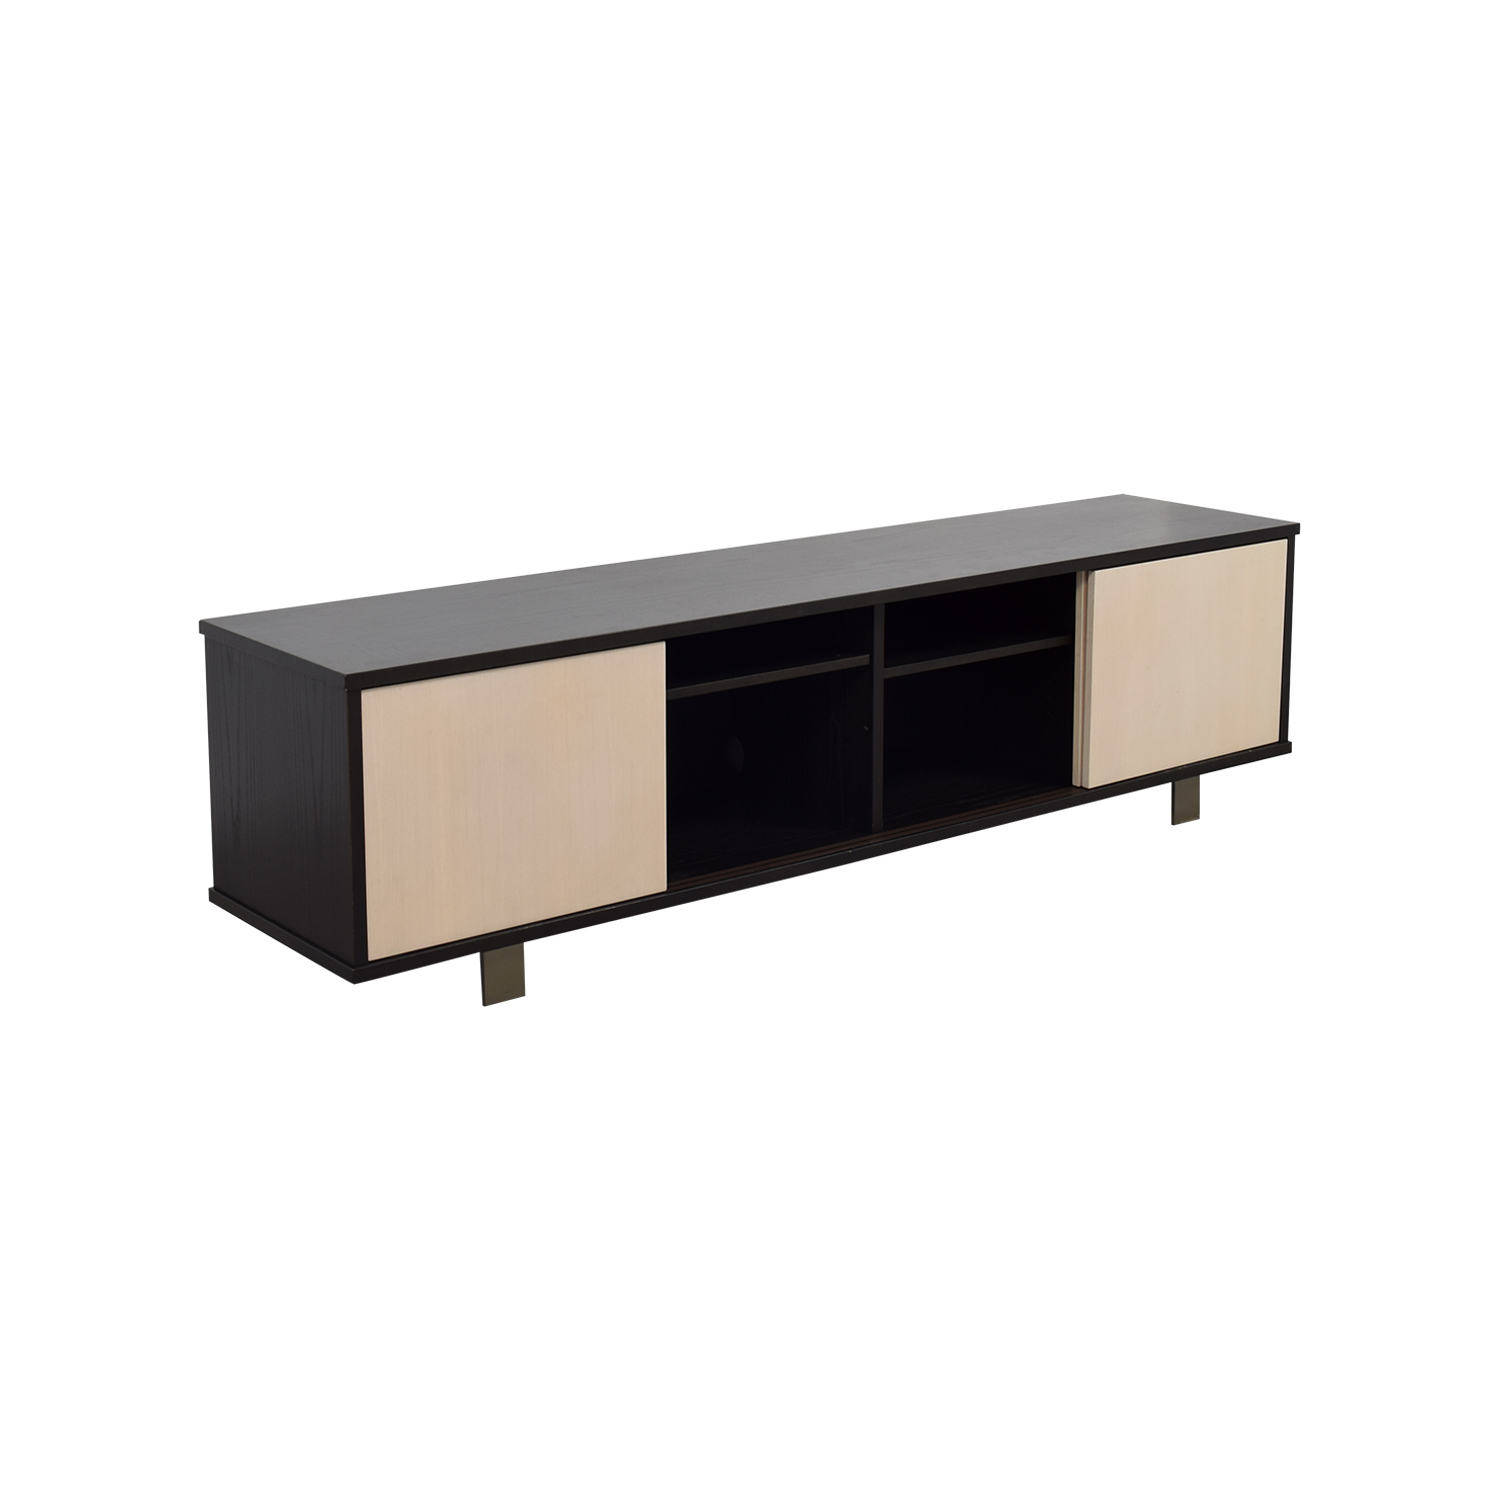 89 Off Custom Made Two Toned Media Credenza Storage